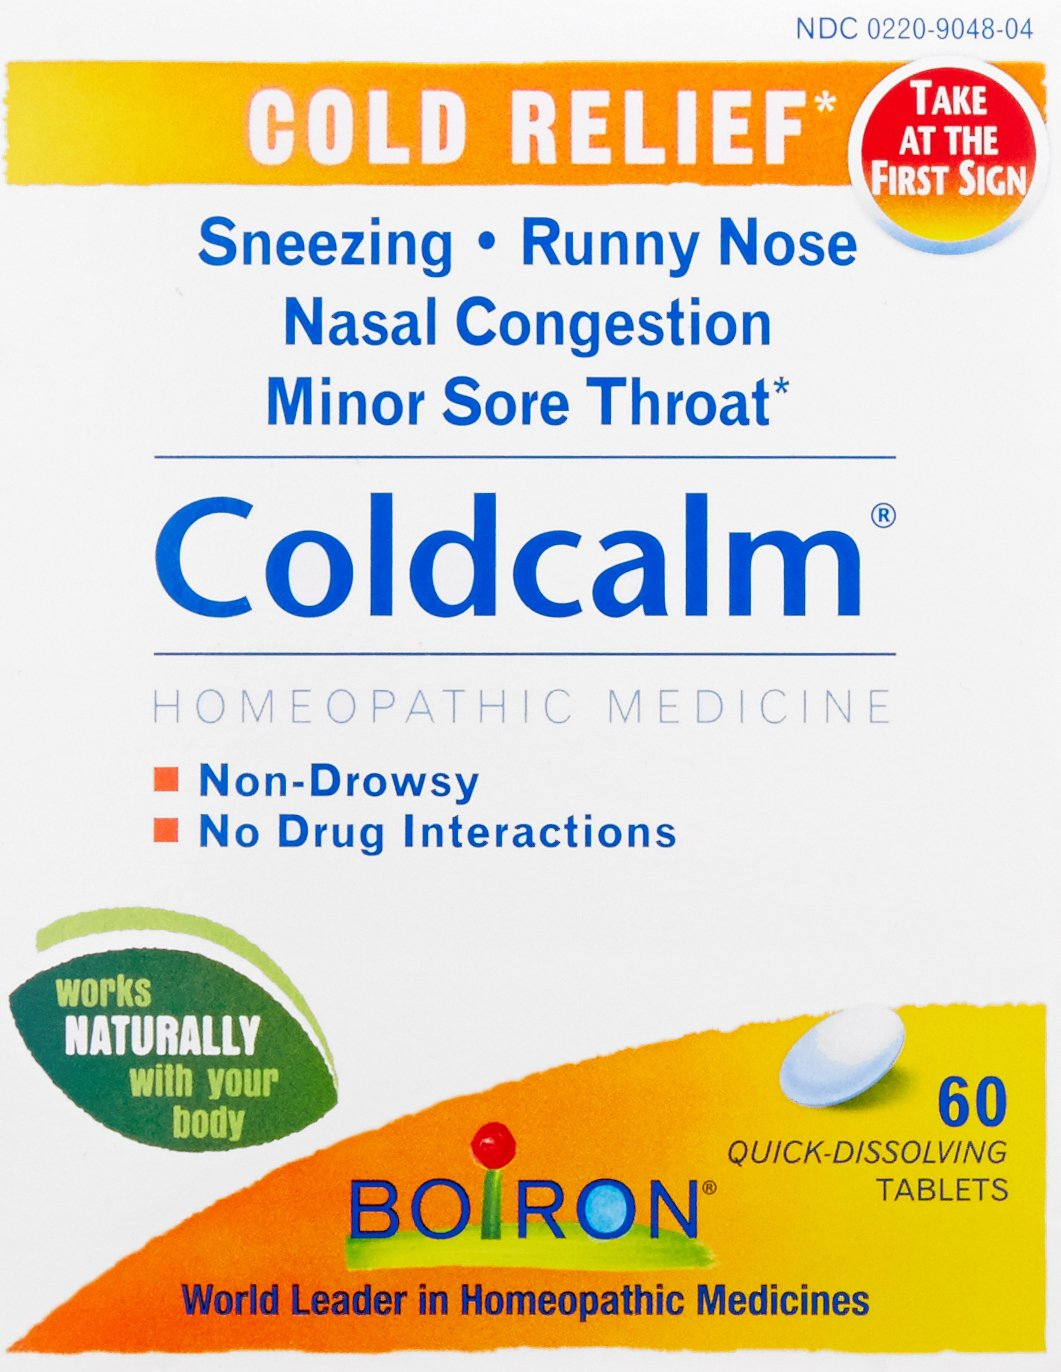 Boiron Coldcalm Cold Relief Medicine, 60 Tablets (Pack of 3). Quick-Dissolvin for Sneezing, Runny Nose, Nasal Congestion and Minor Sore Throat. Non-drowsy Cold Medicine, Natural Active Ingredients by Boiron